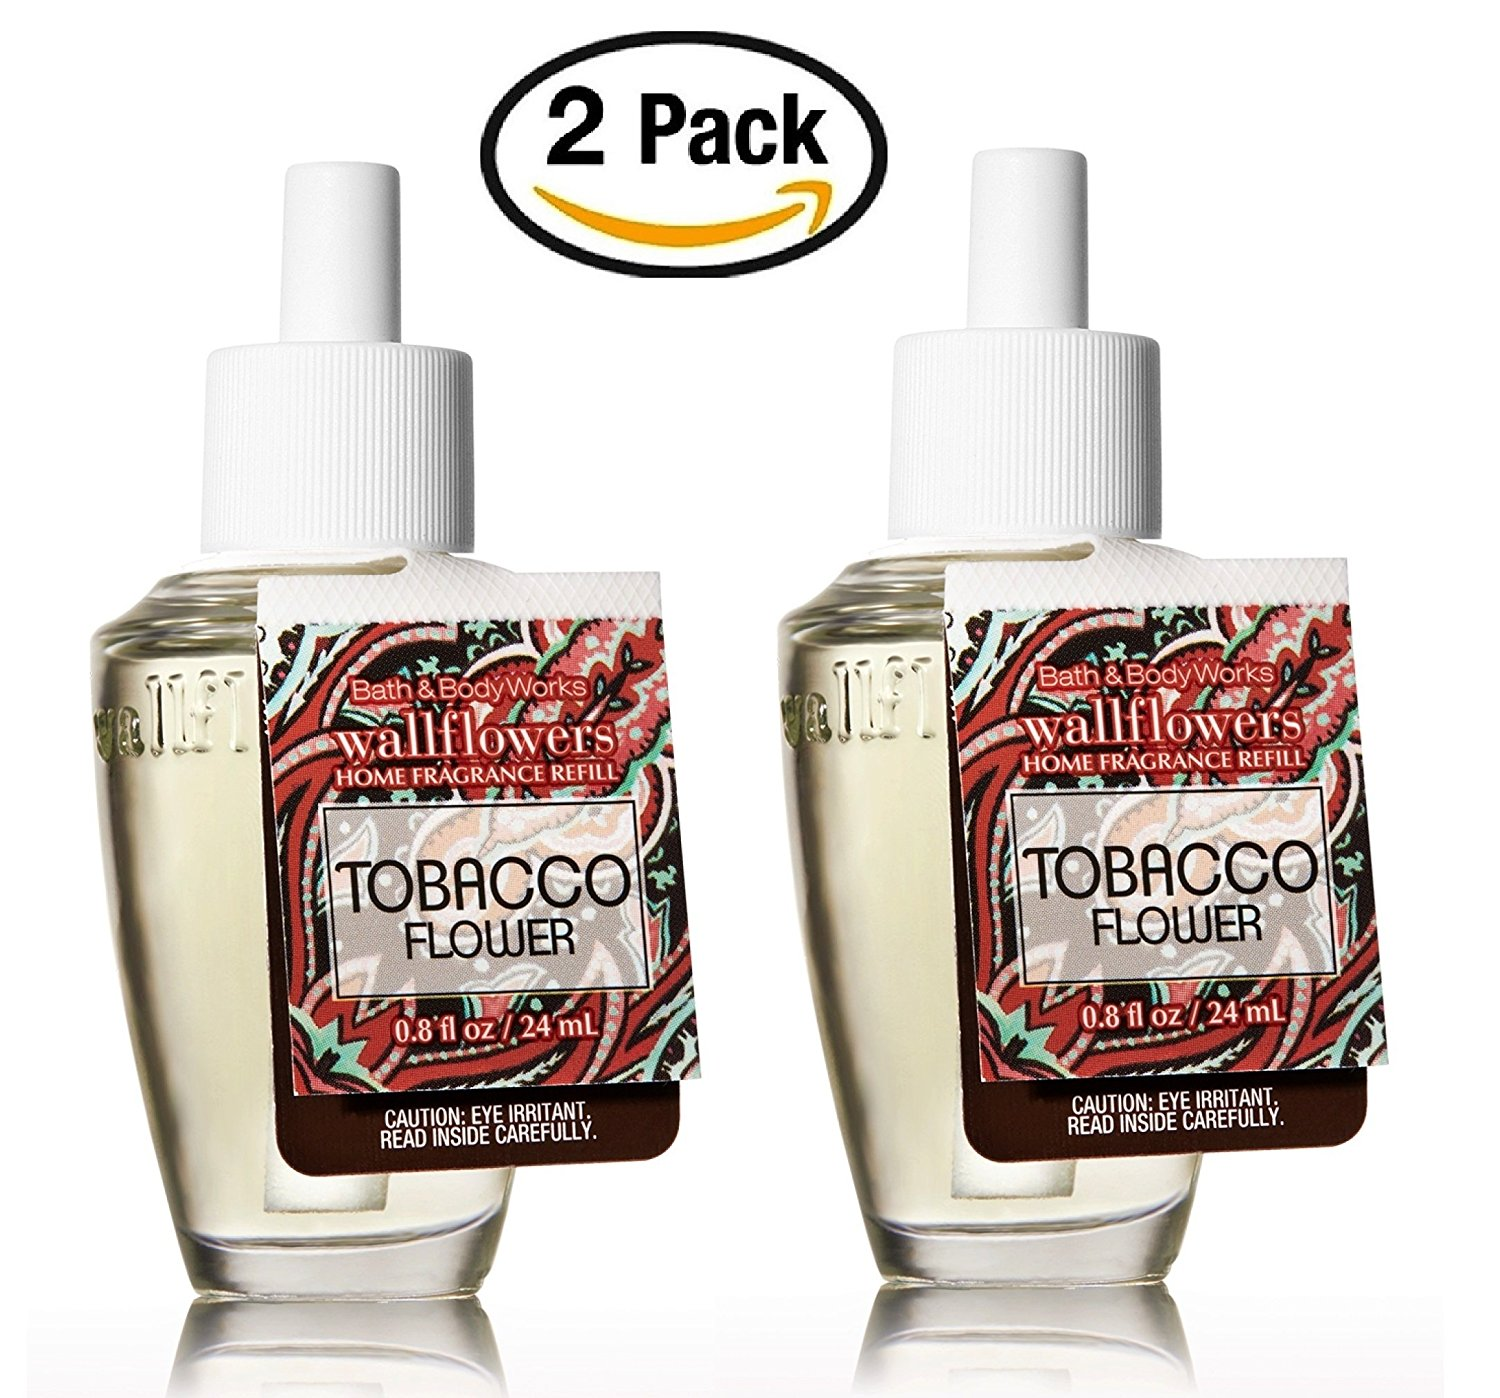 Cheap flower bulbs sale find flower bulbs sale deals on line at get quotations bath and body works tobacco flower wallflower refills pair of 2 tobacco flower wallflower izmirmasajfo